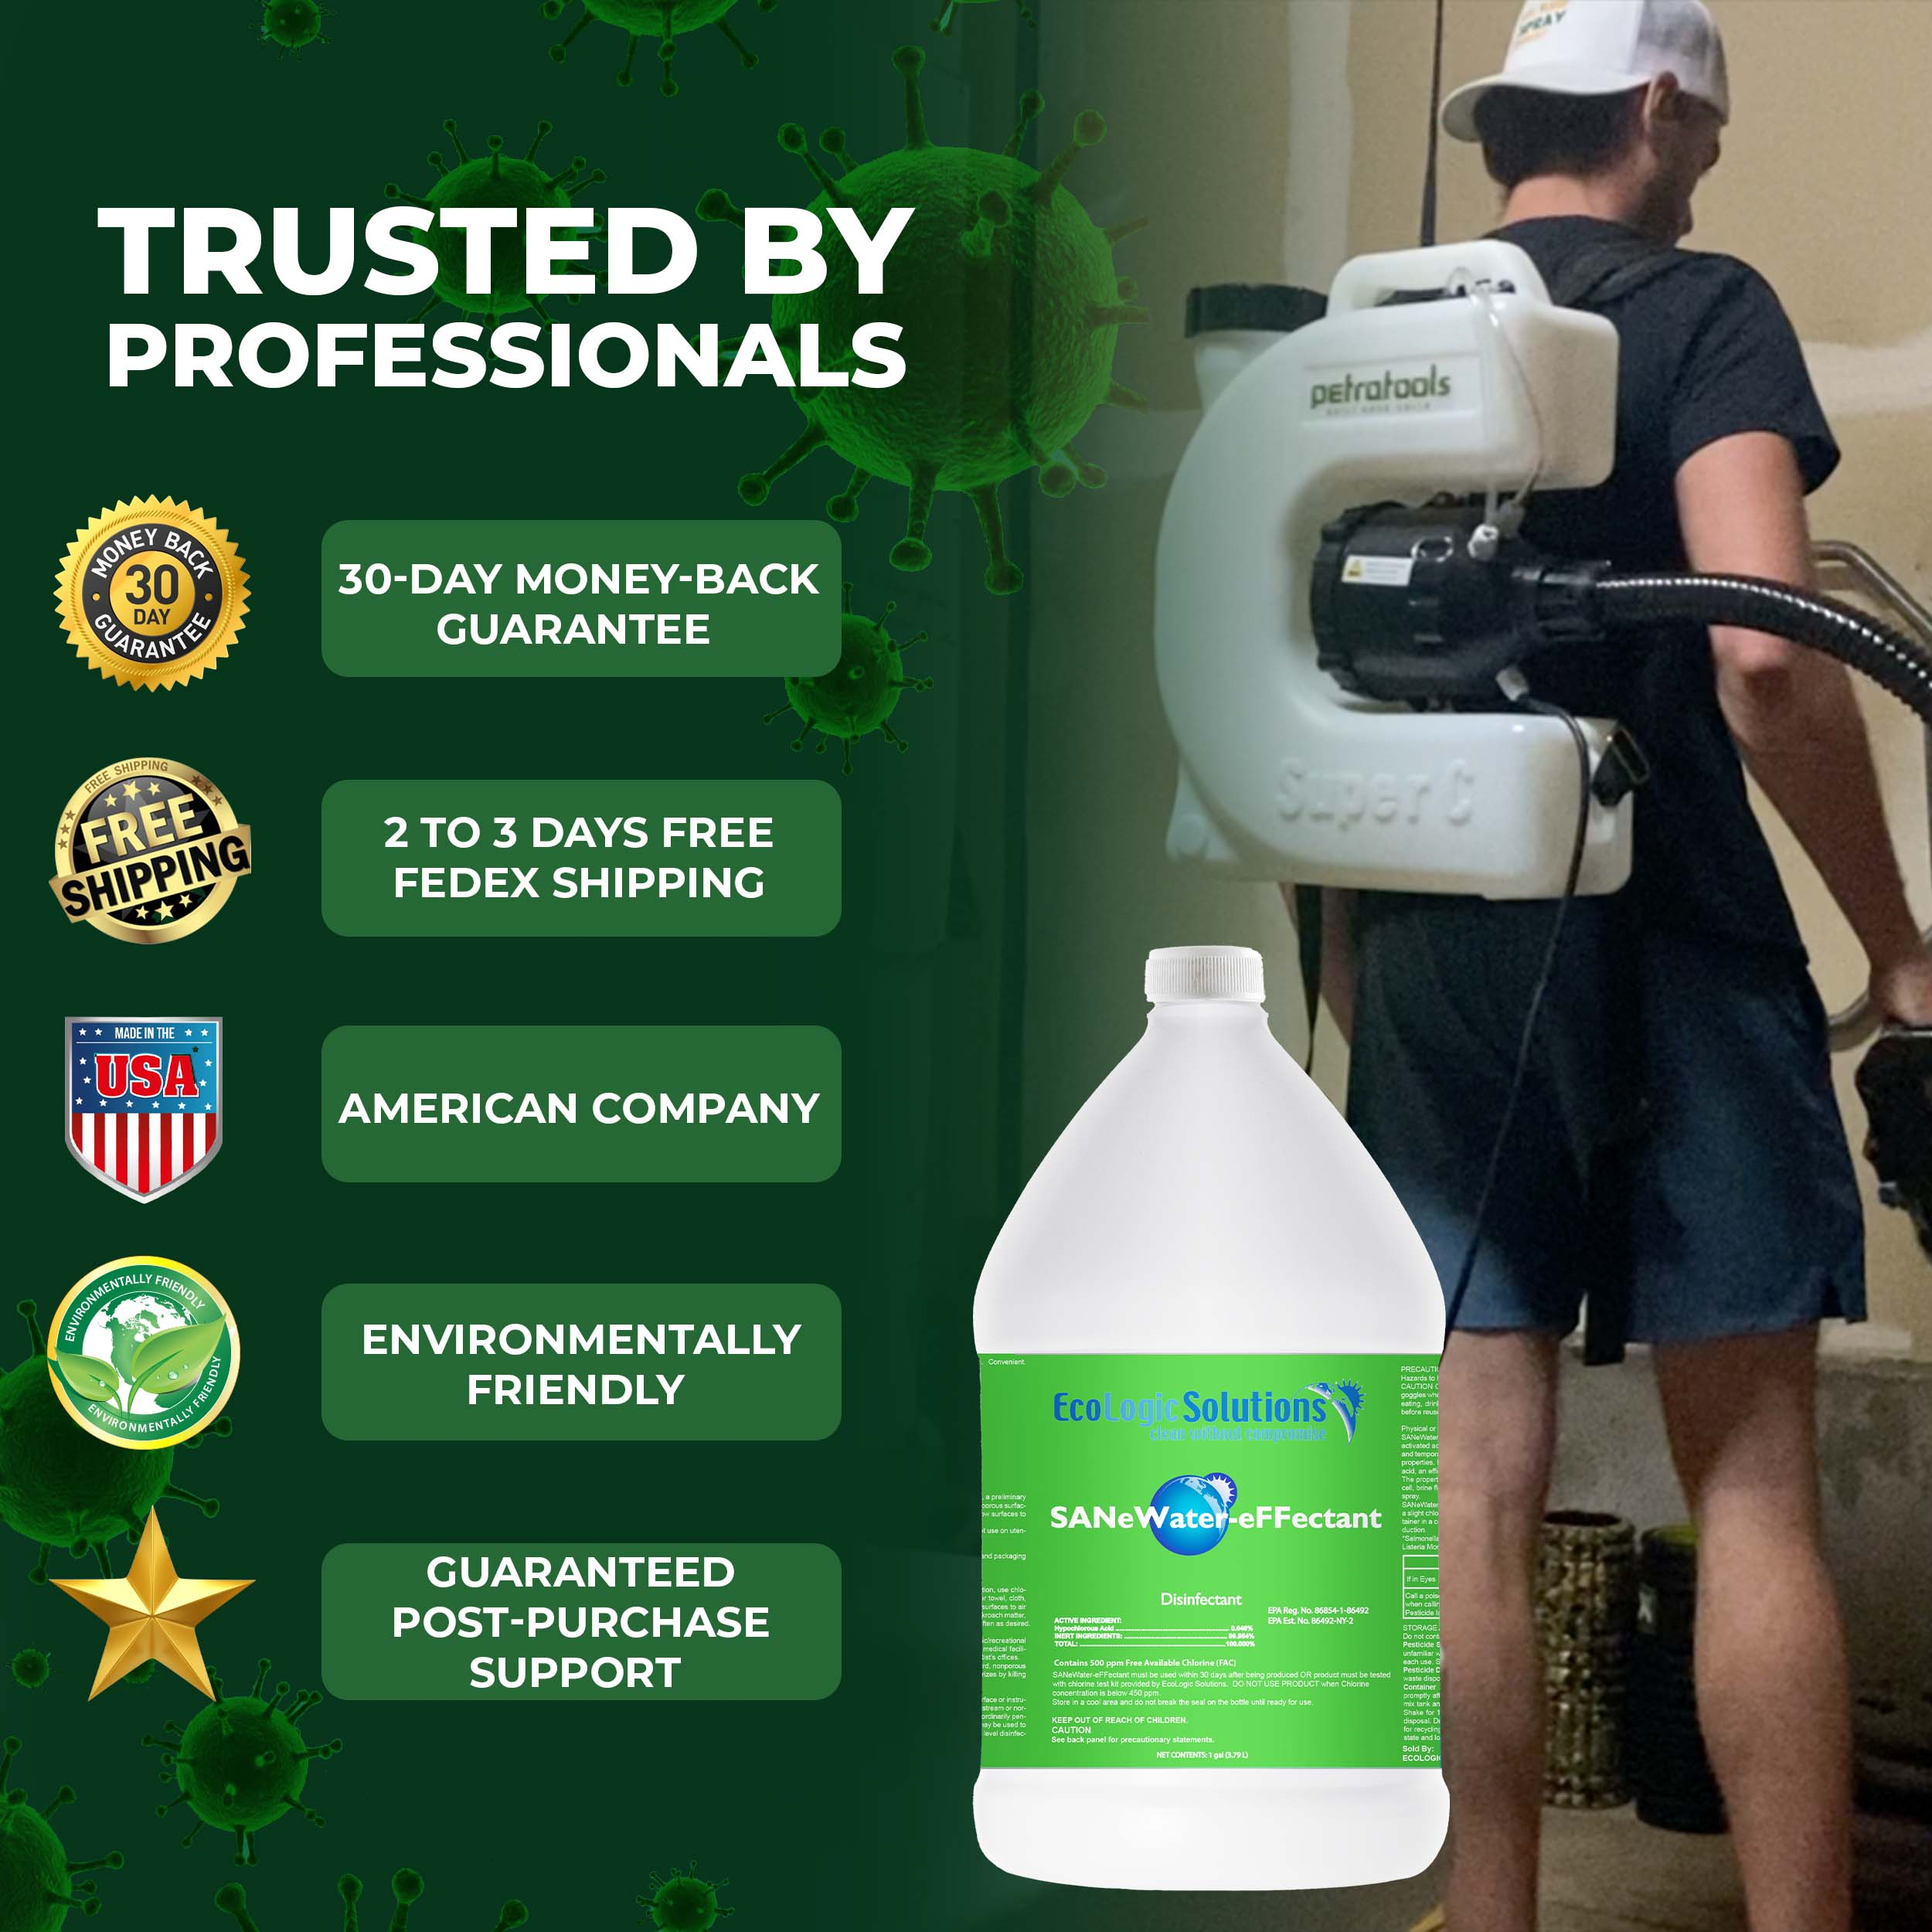 ULV500 Professional Surface Cleaner, Hypochlorous Acid (HOCl) - 55-Gallon